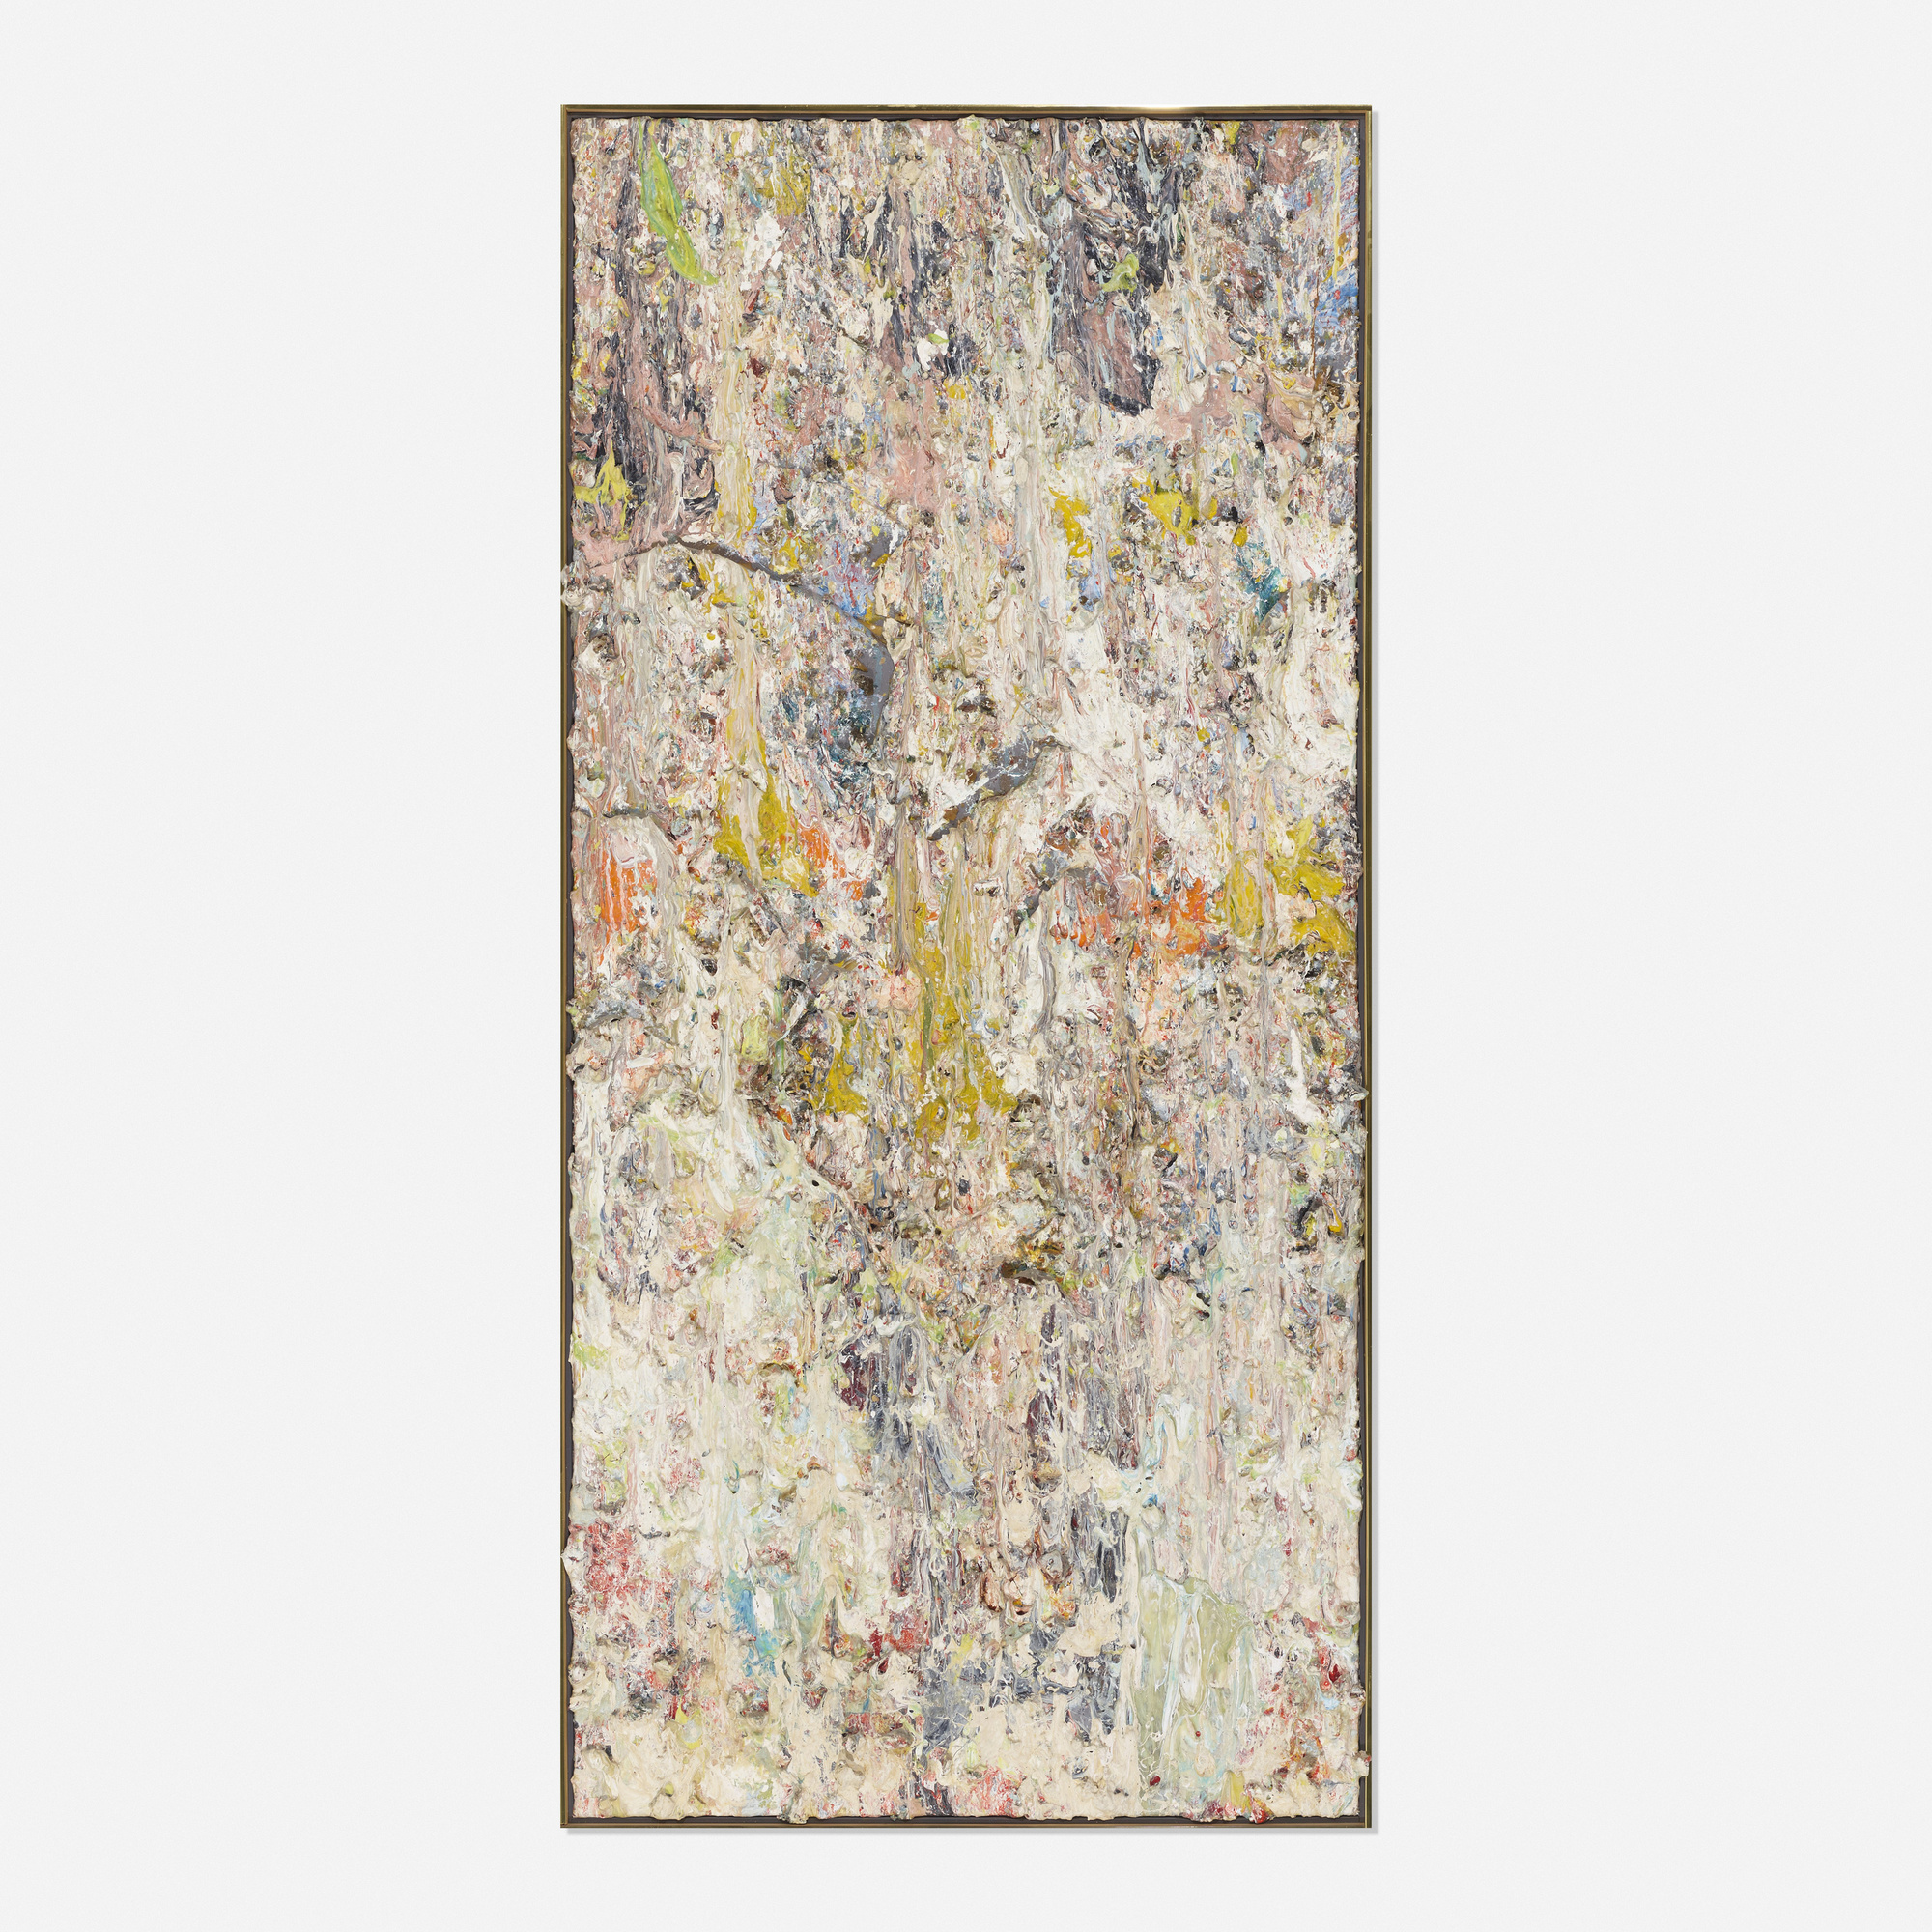 164: Larry Poons / Sam and Paris (1 of 1)